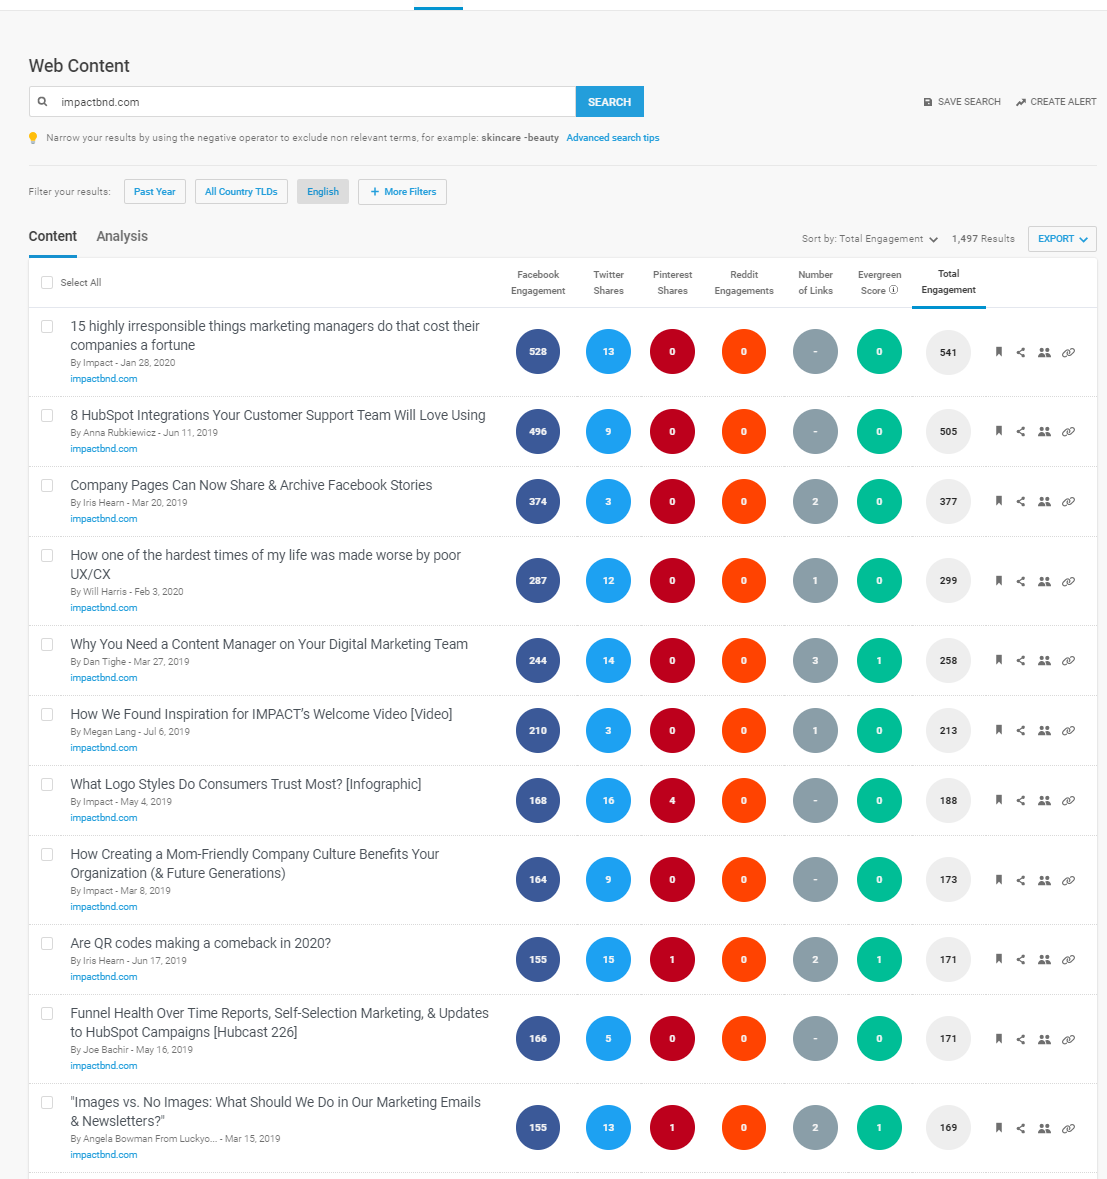 Top Shared Content BuzzSumo Impact Bend